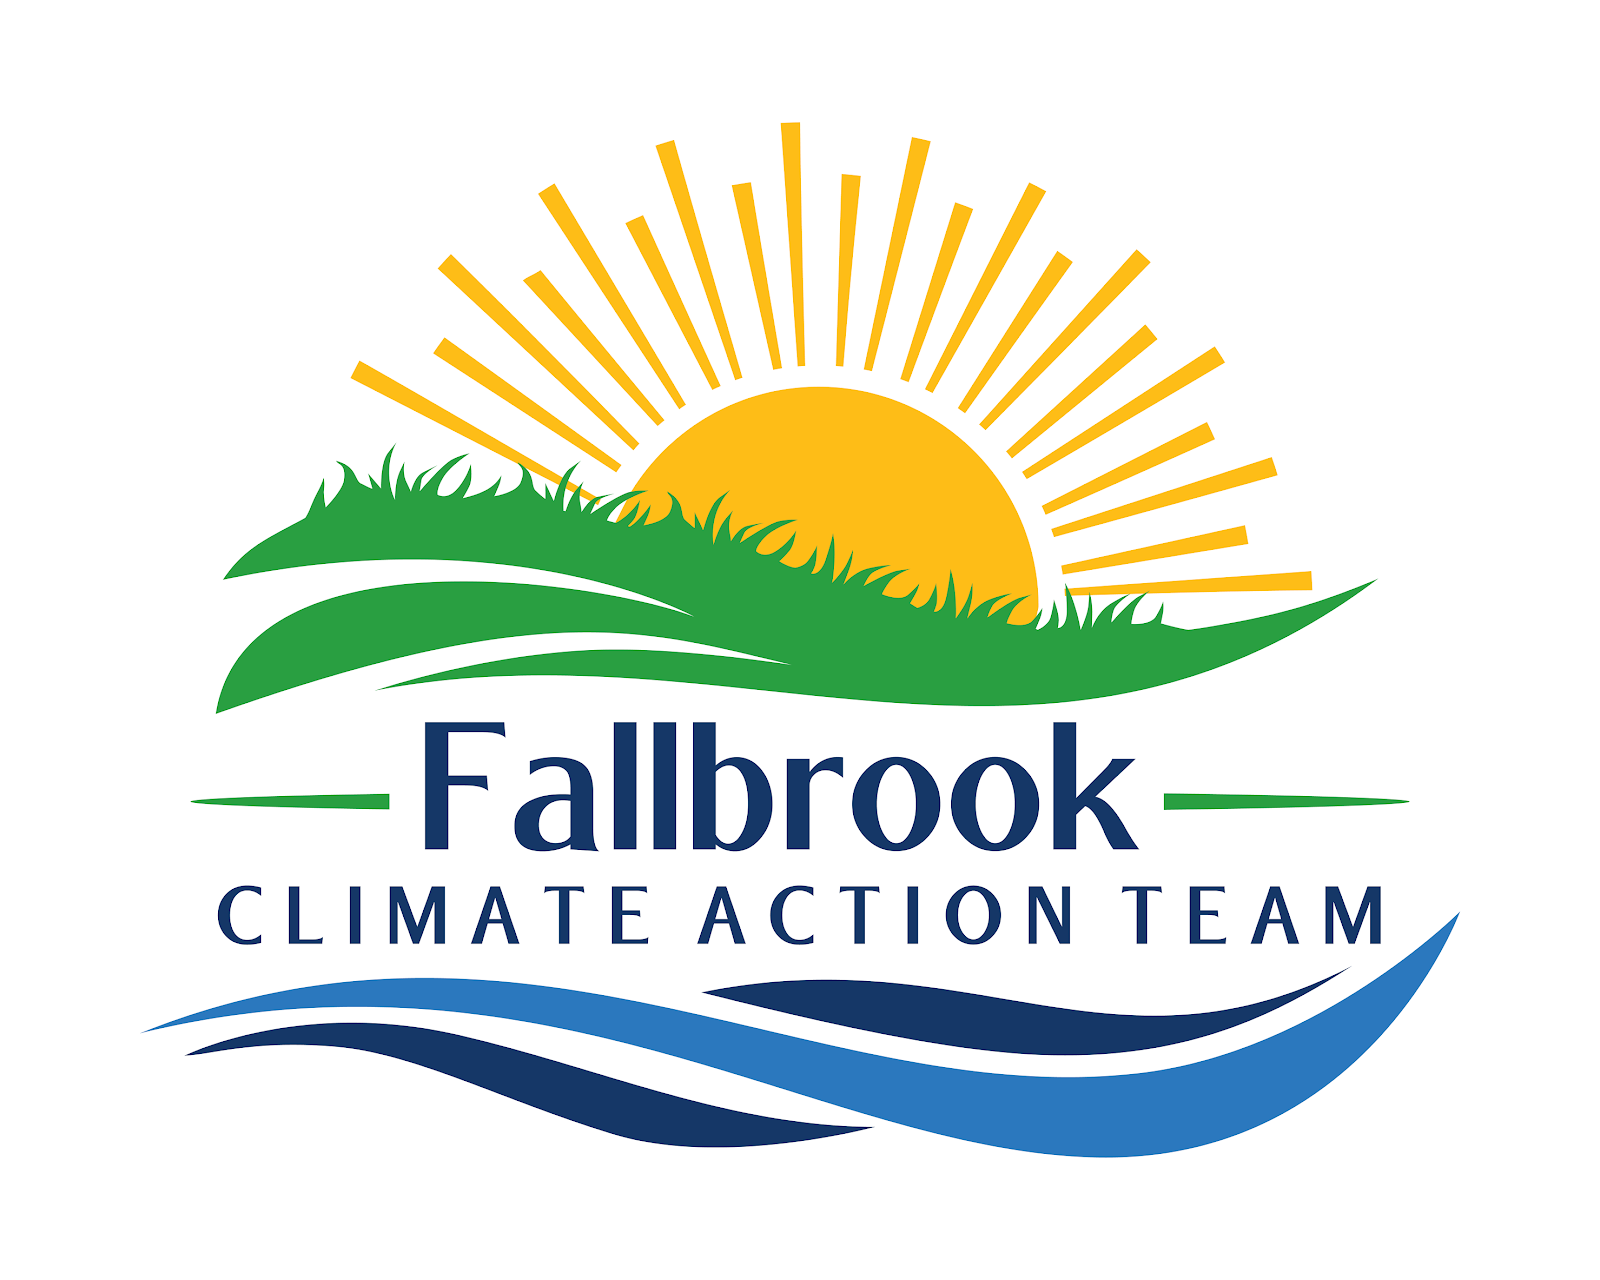 Fallbrook Climate Action Team